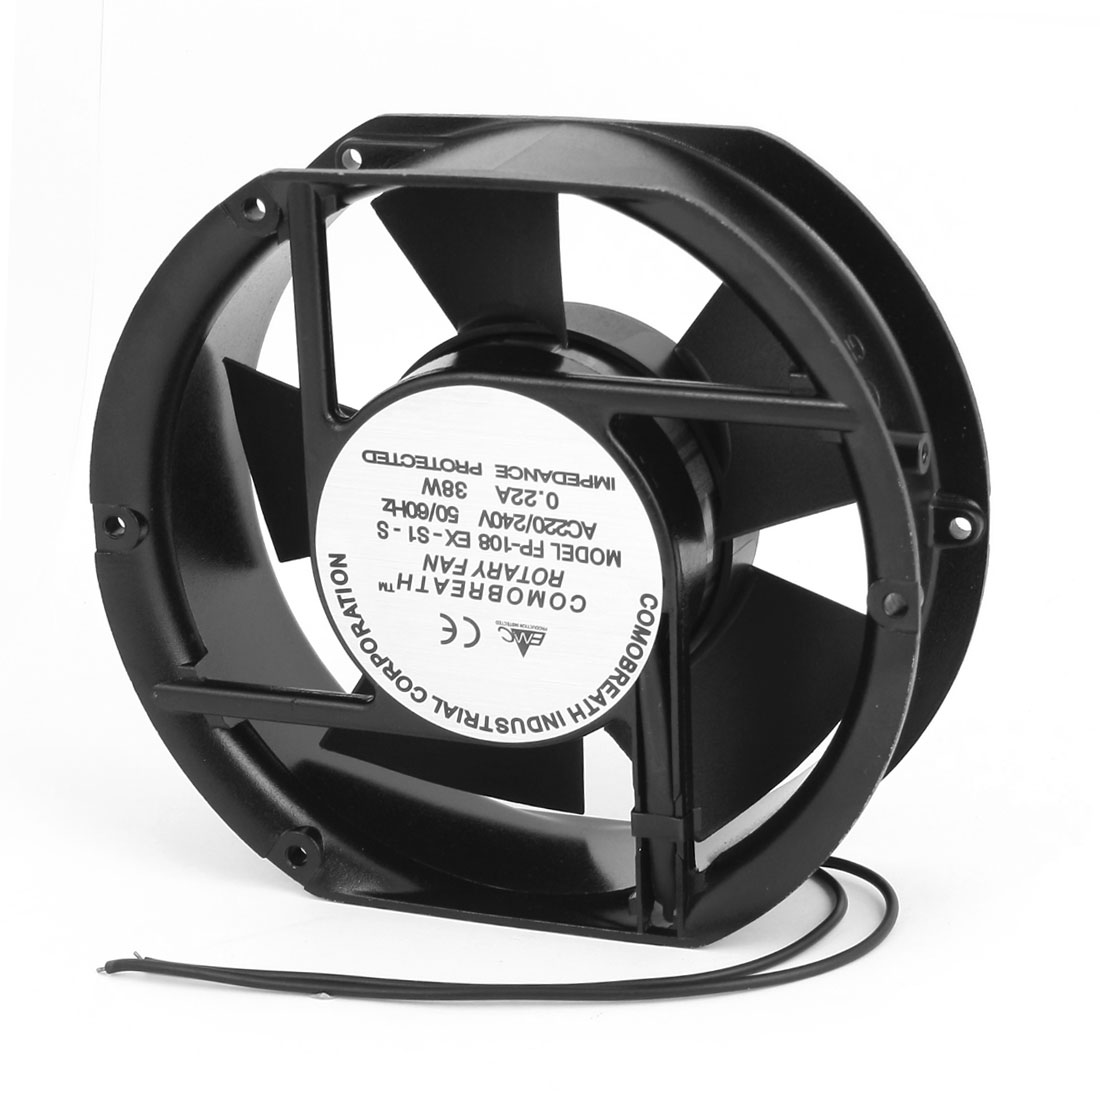 AC 220-240V 0.22A Oval Sleeve Bearing Axial Cooling Fan 17 x 15 x 5.2cm